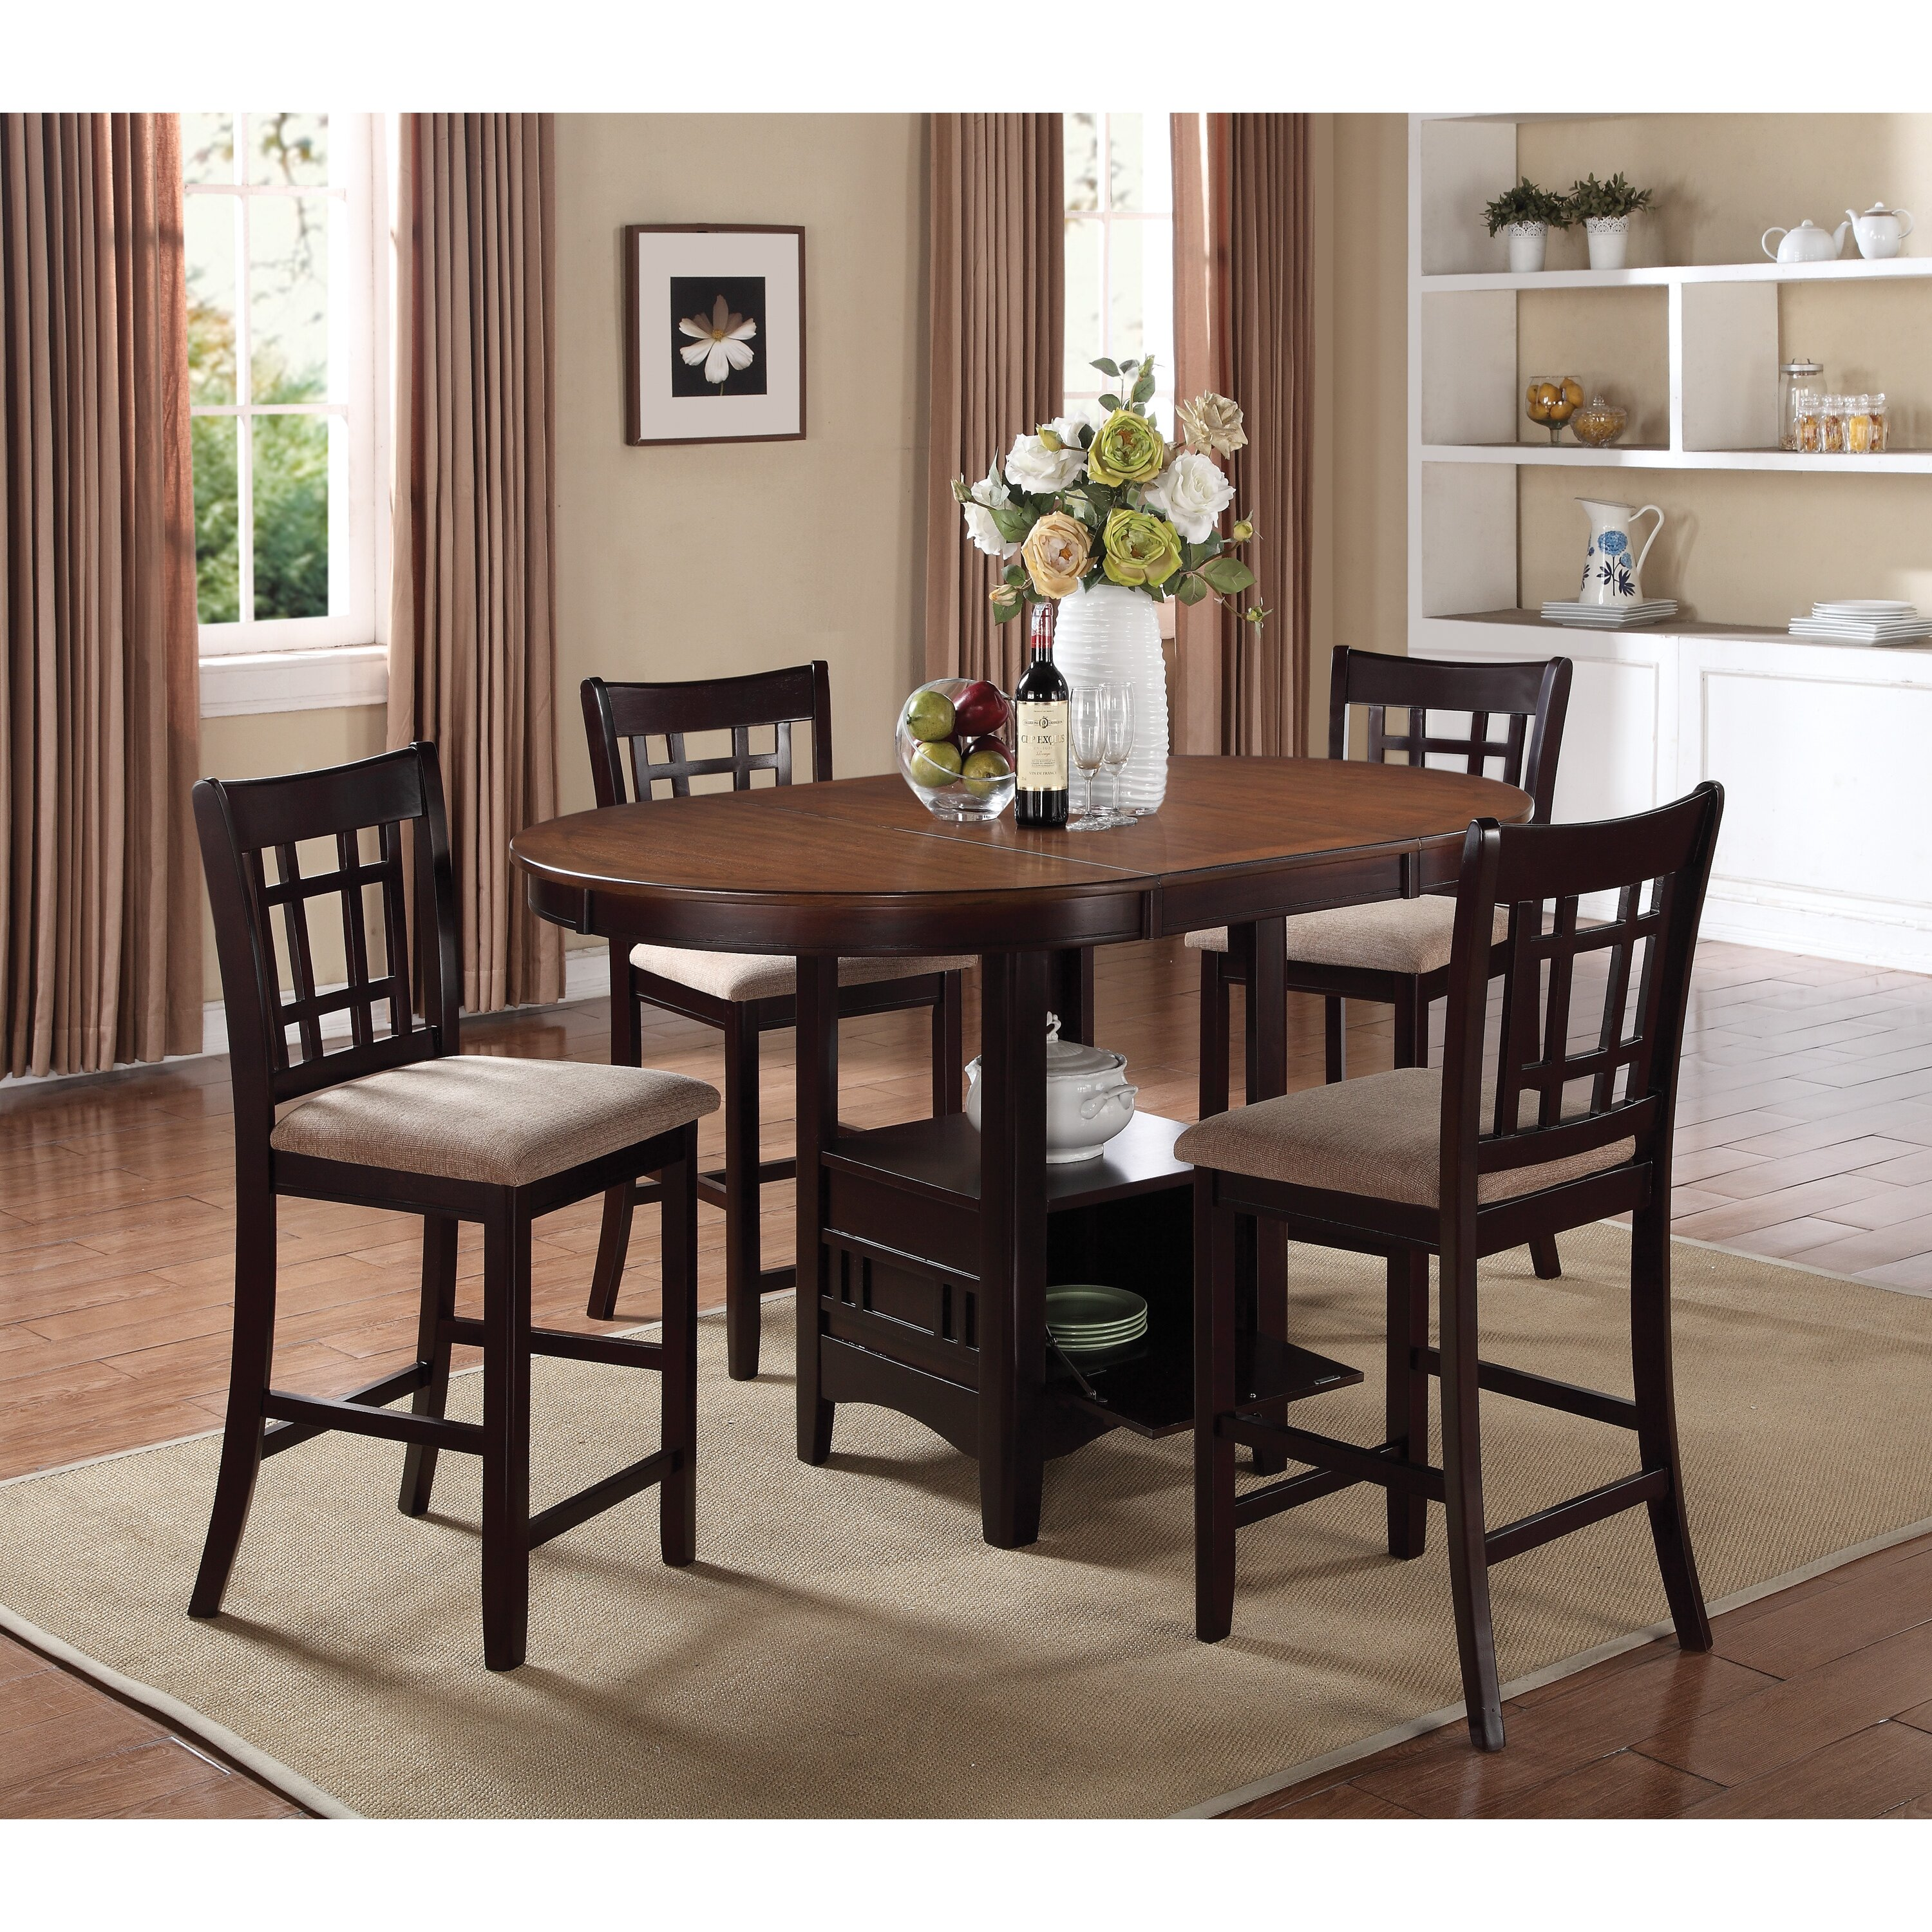 Oval Kitchen Table Pedestal Oval Kitchen Dining Tables Youll Love Wayfair